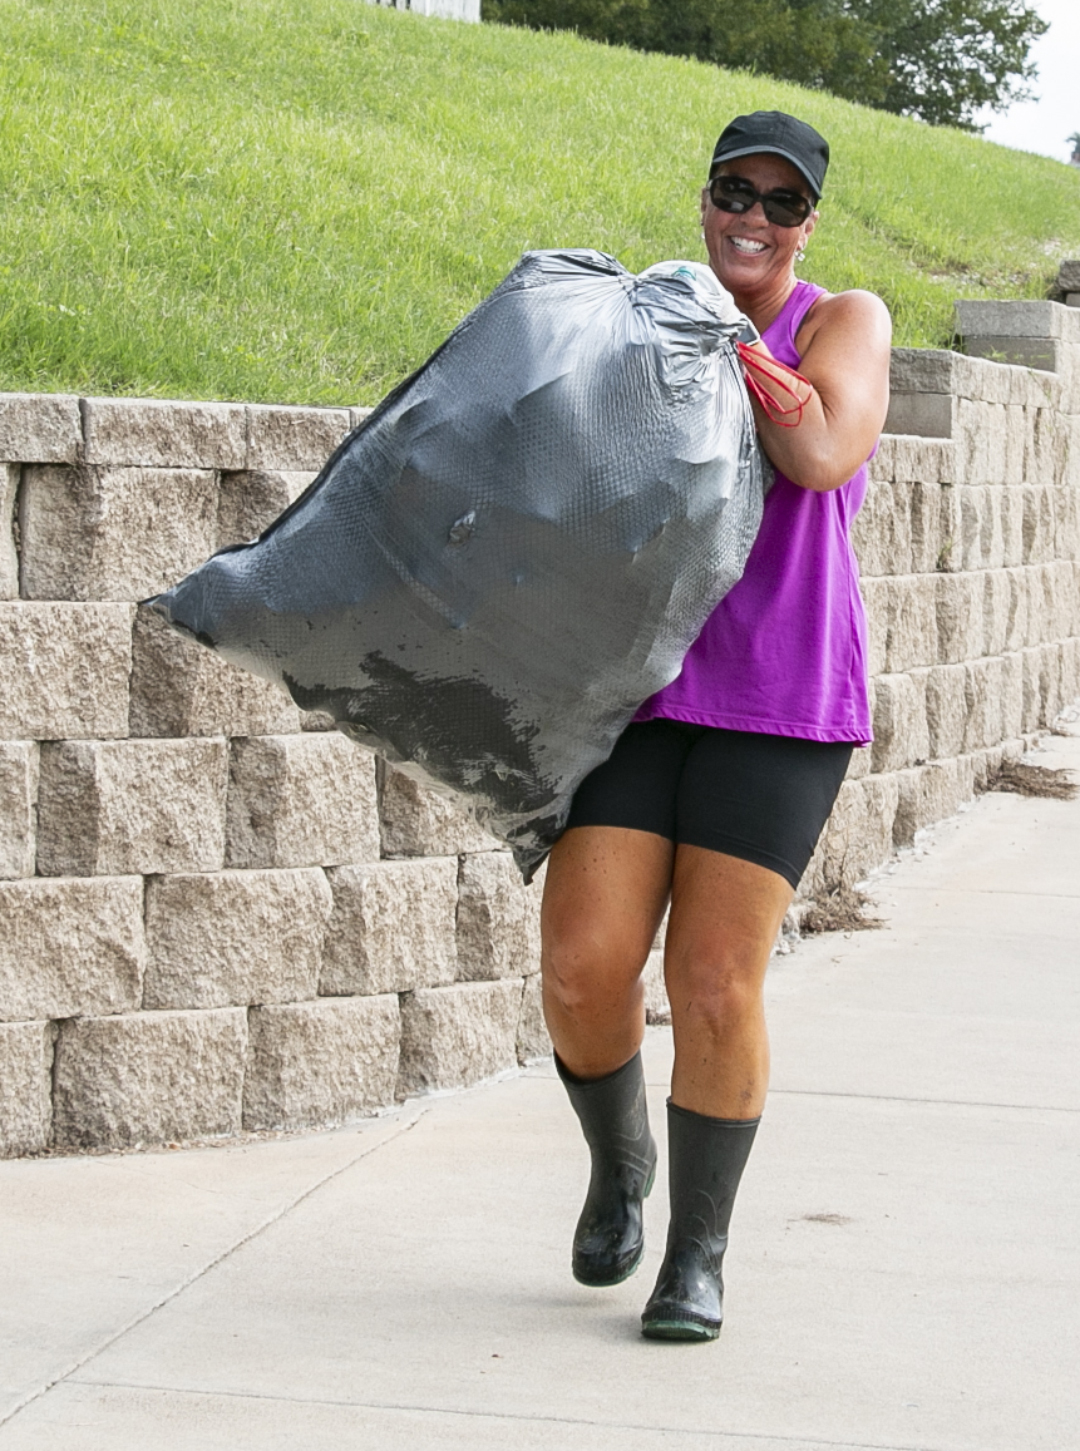 A Trash Bash attendee heads toward the starting area with a filled garbage bag. Trash bags and gloves were provided.